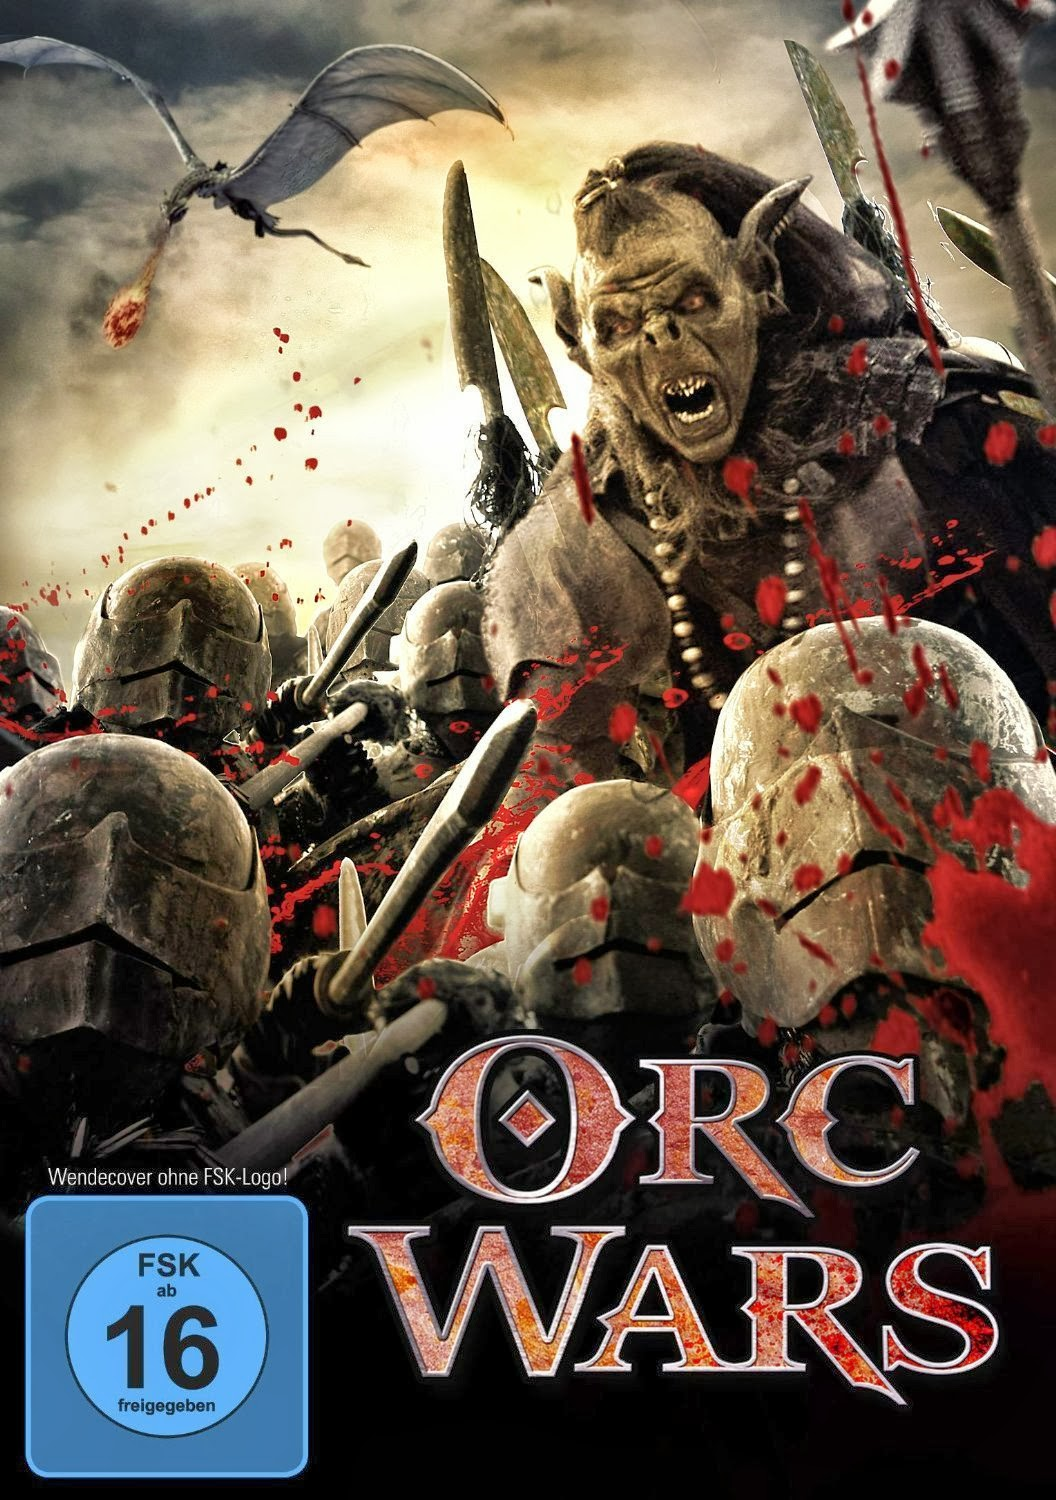 Orc Wars – BDRip